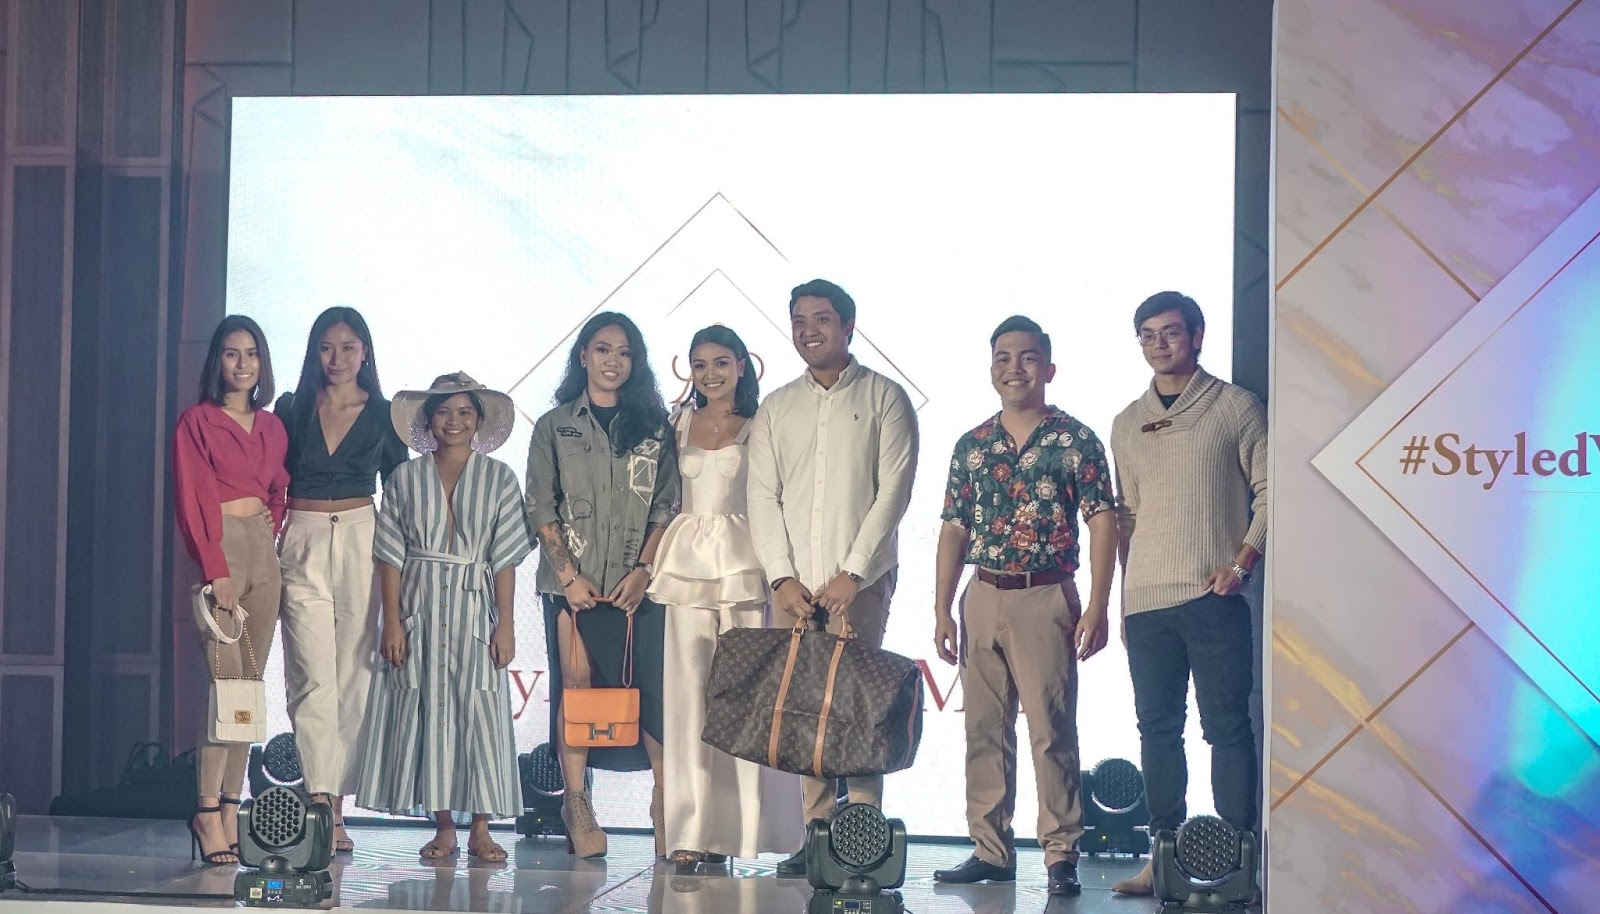 #StyledwithAUMA: Empower Filipinos through Fashion